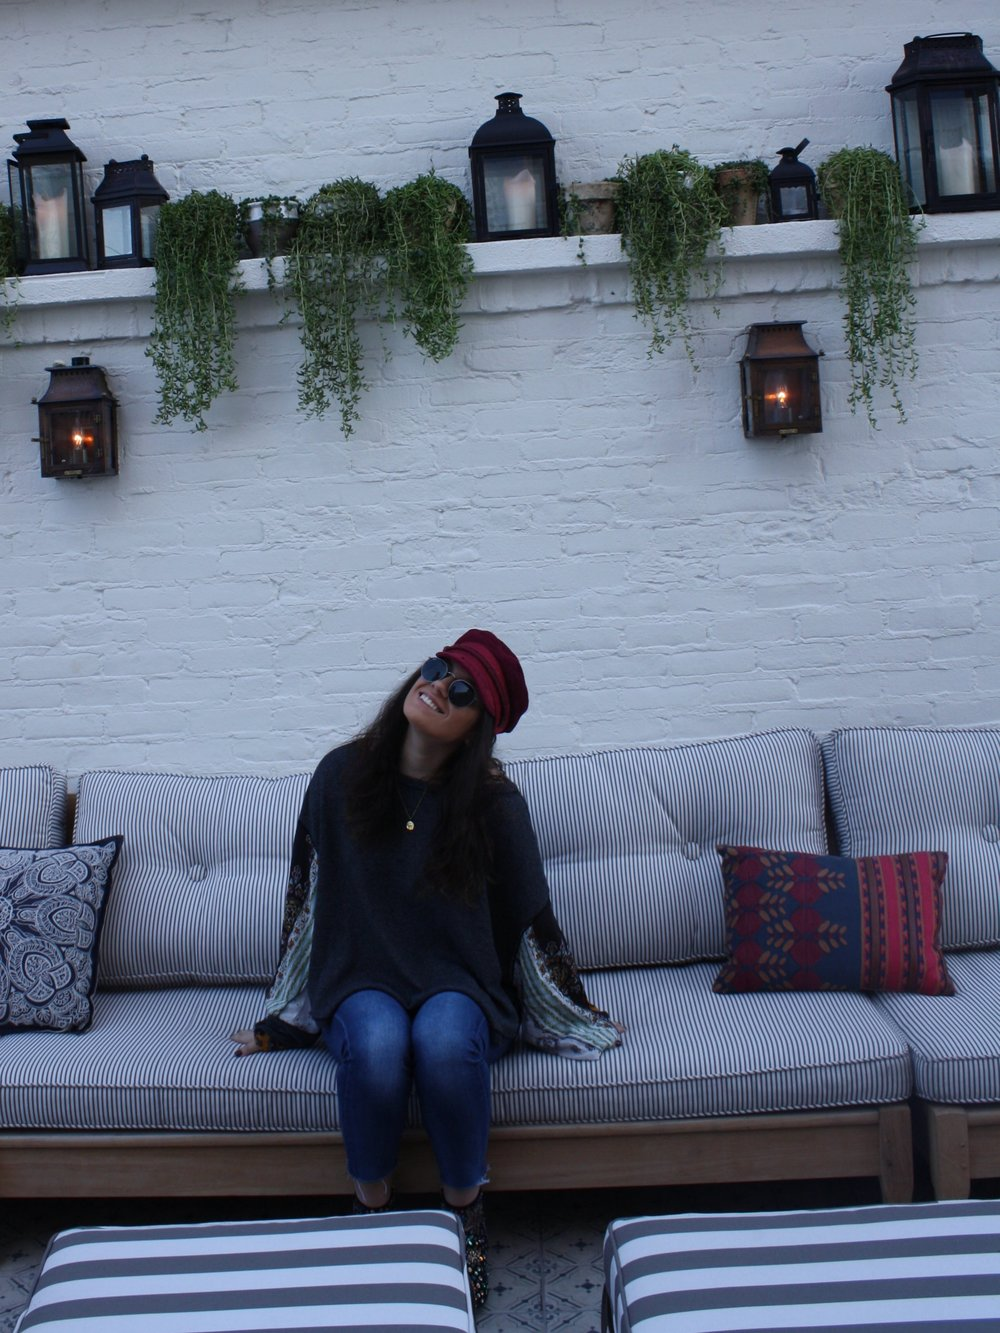 Hat: Brtixton from UO; Shirt: Free People; Jeans: 7 for All Mankind; Sunglasses: Ray-Ban